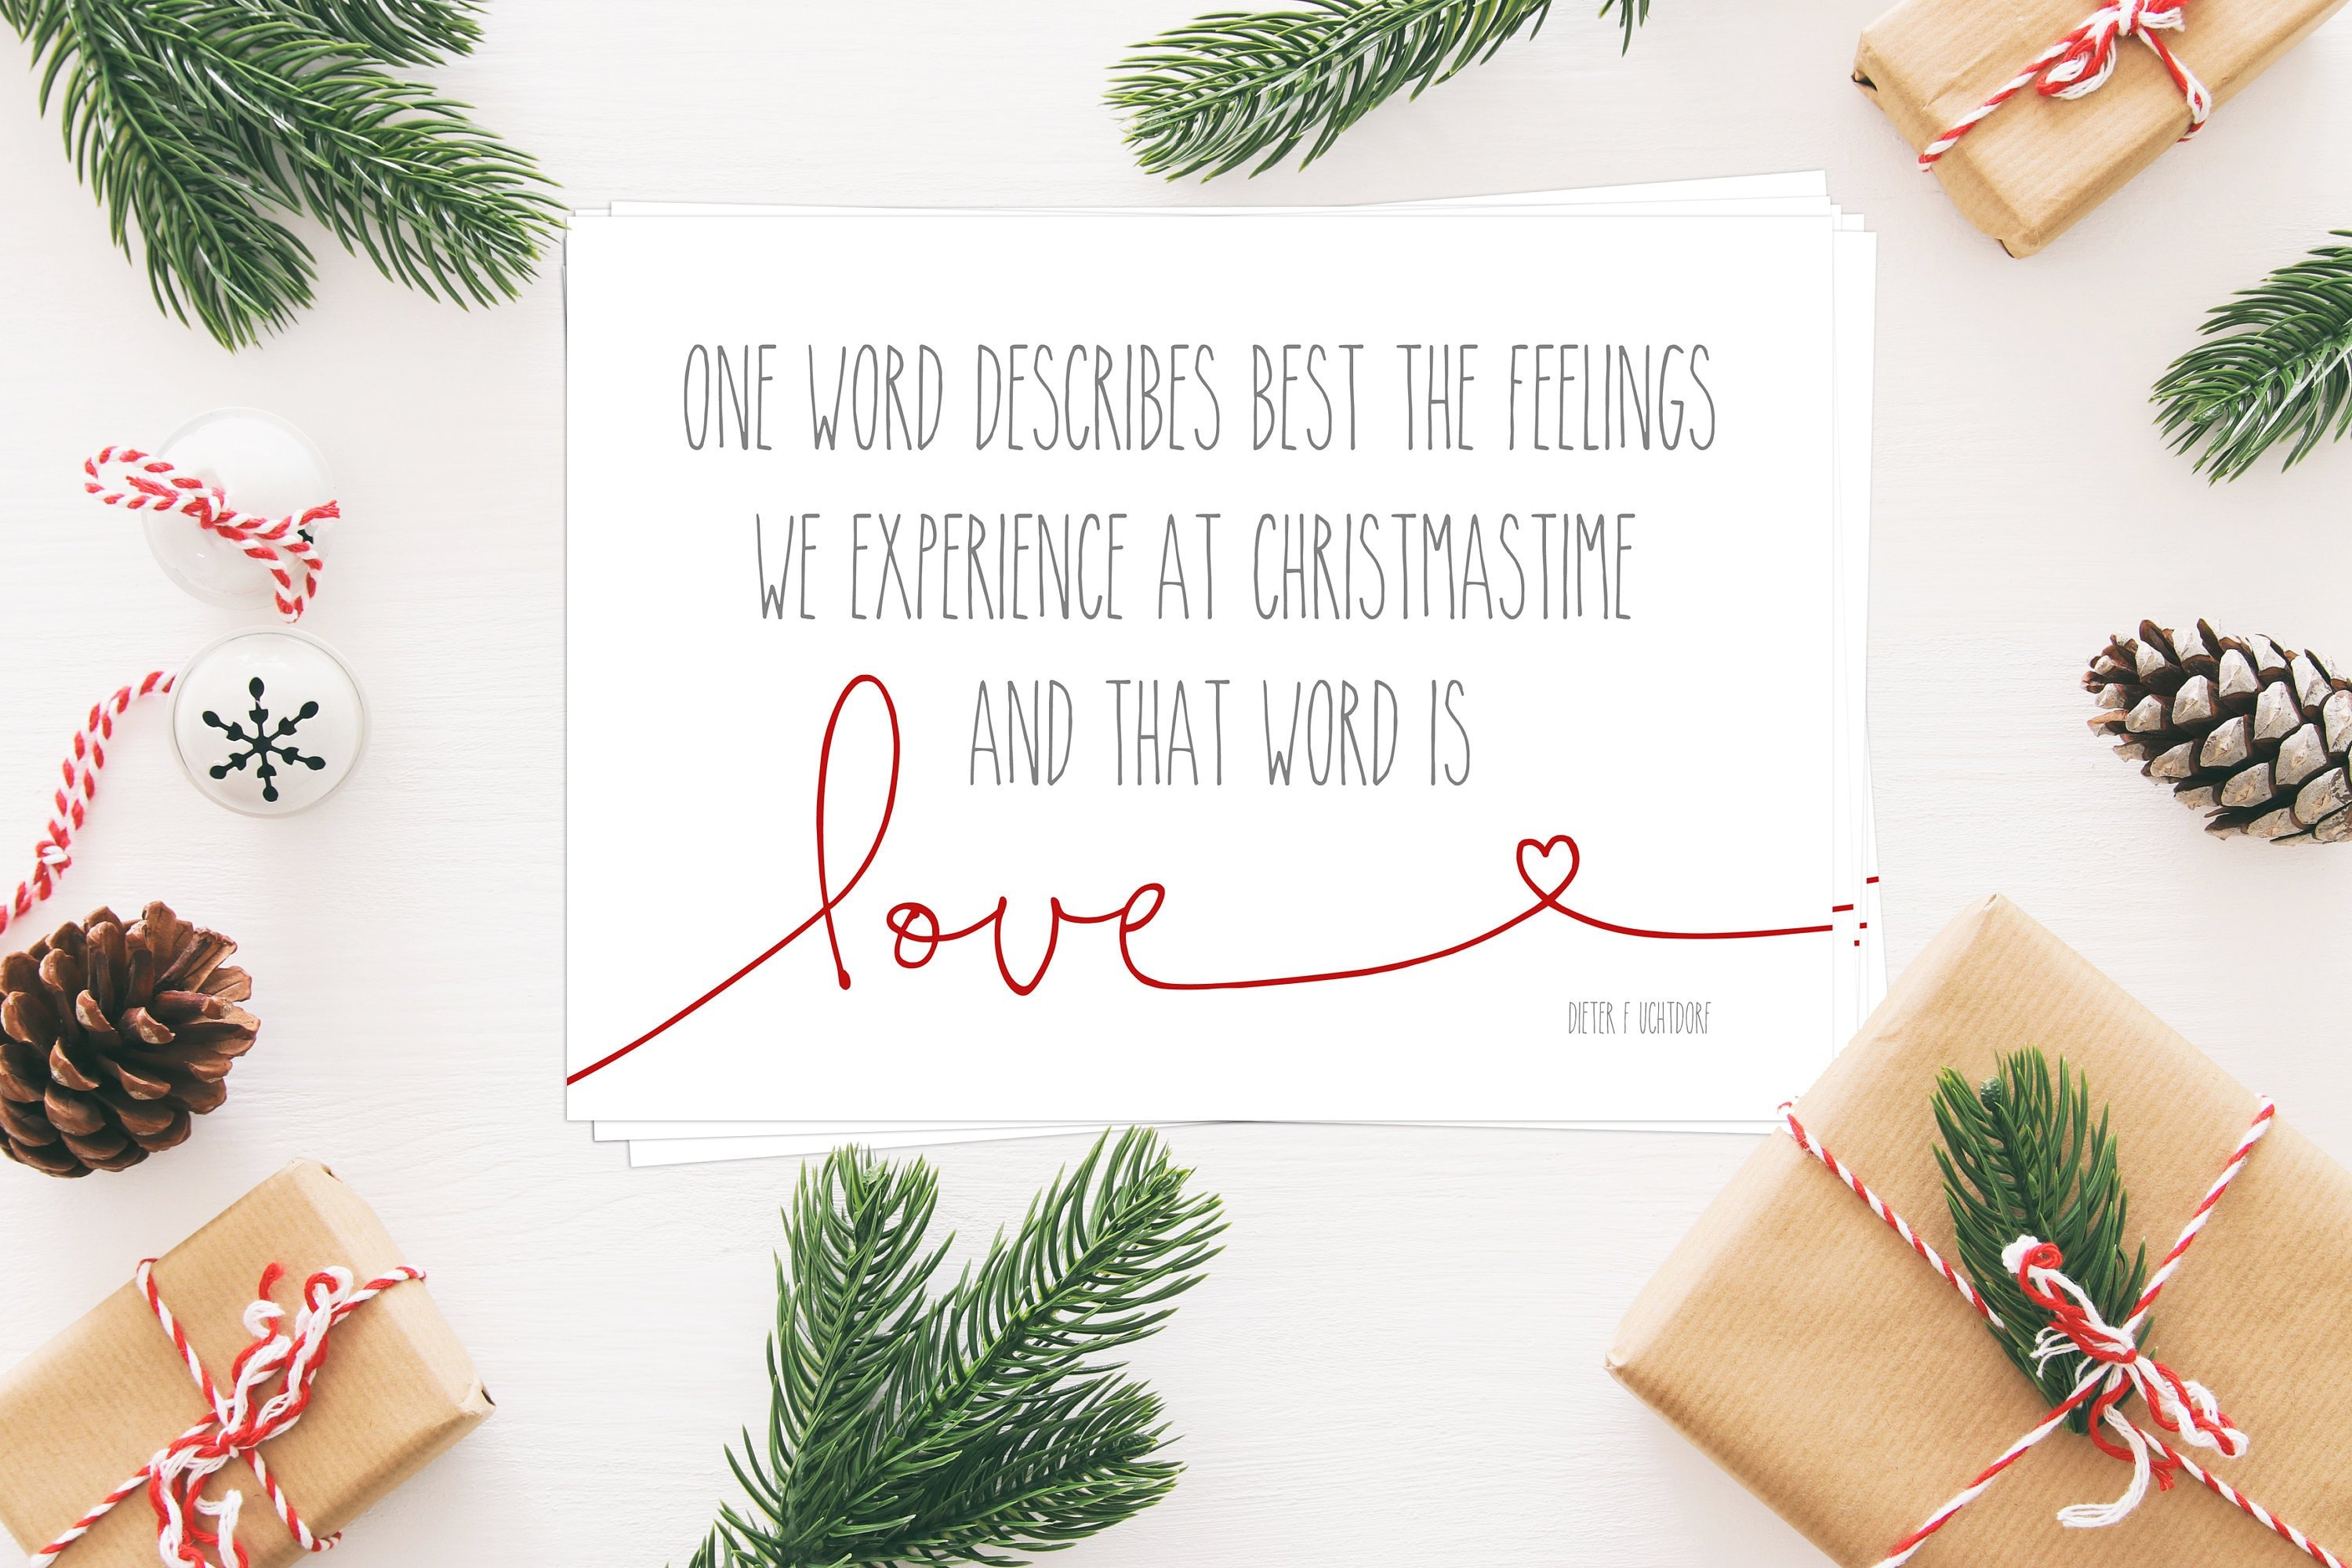 Teacher Gifts For Christmas.Christmas Is Love Bulk Quantity 10 5x7 S Perfect For